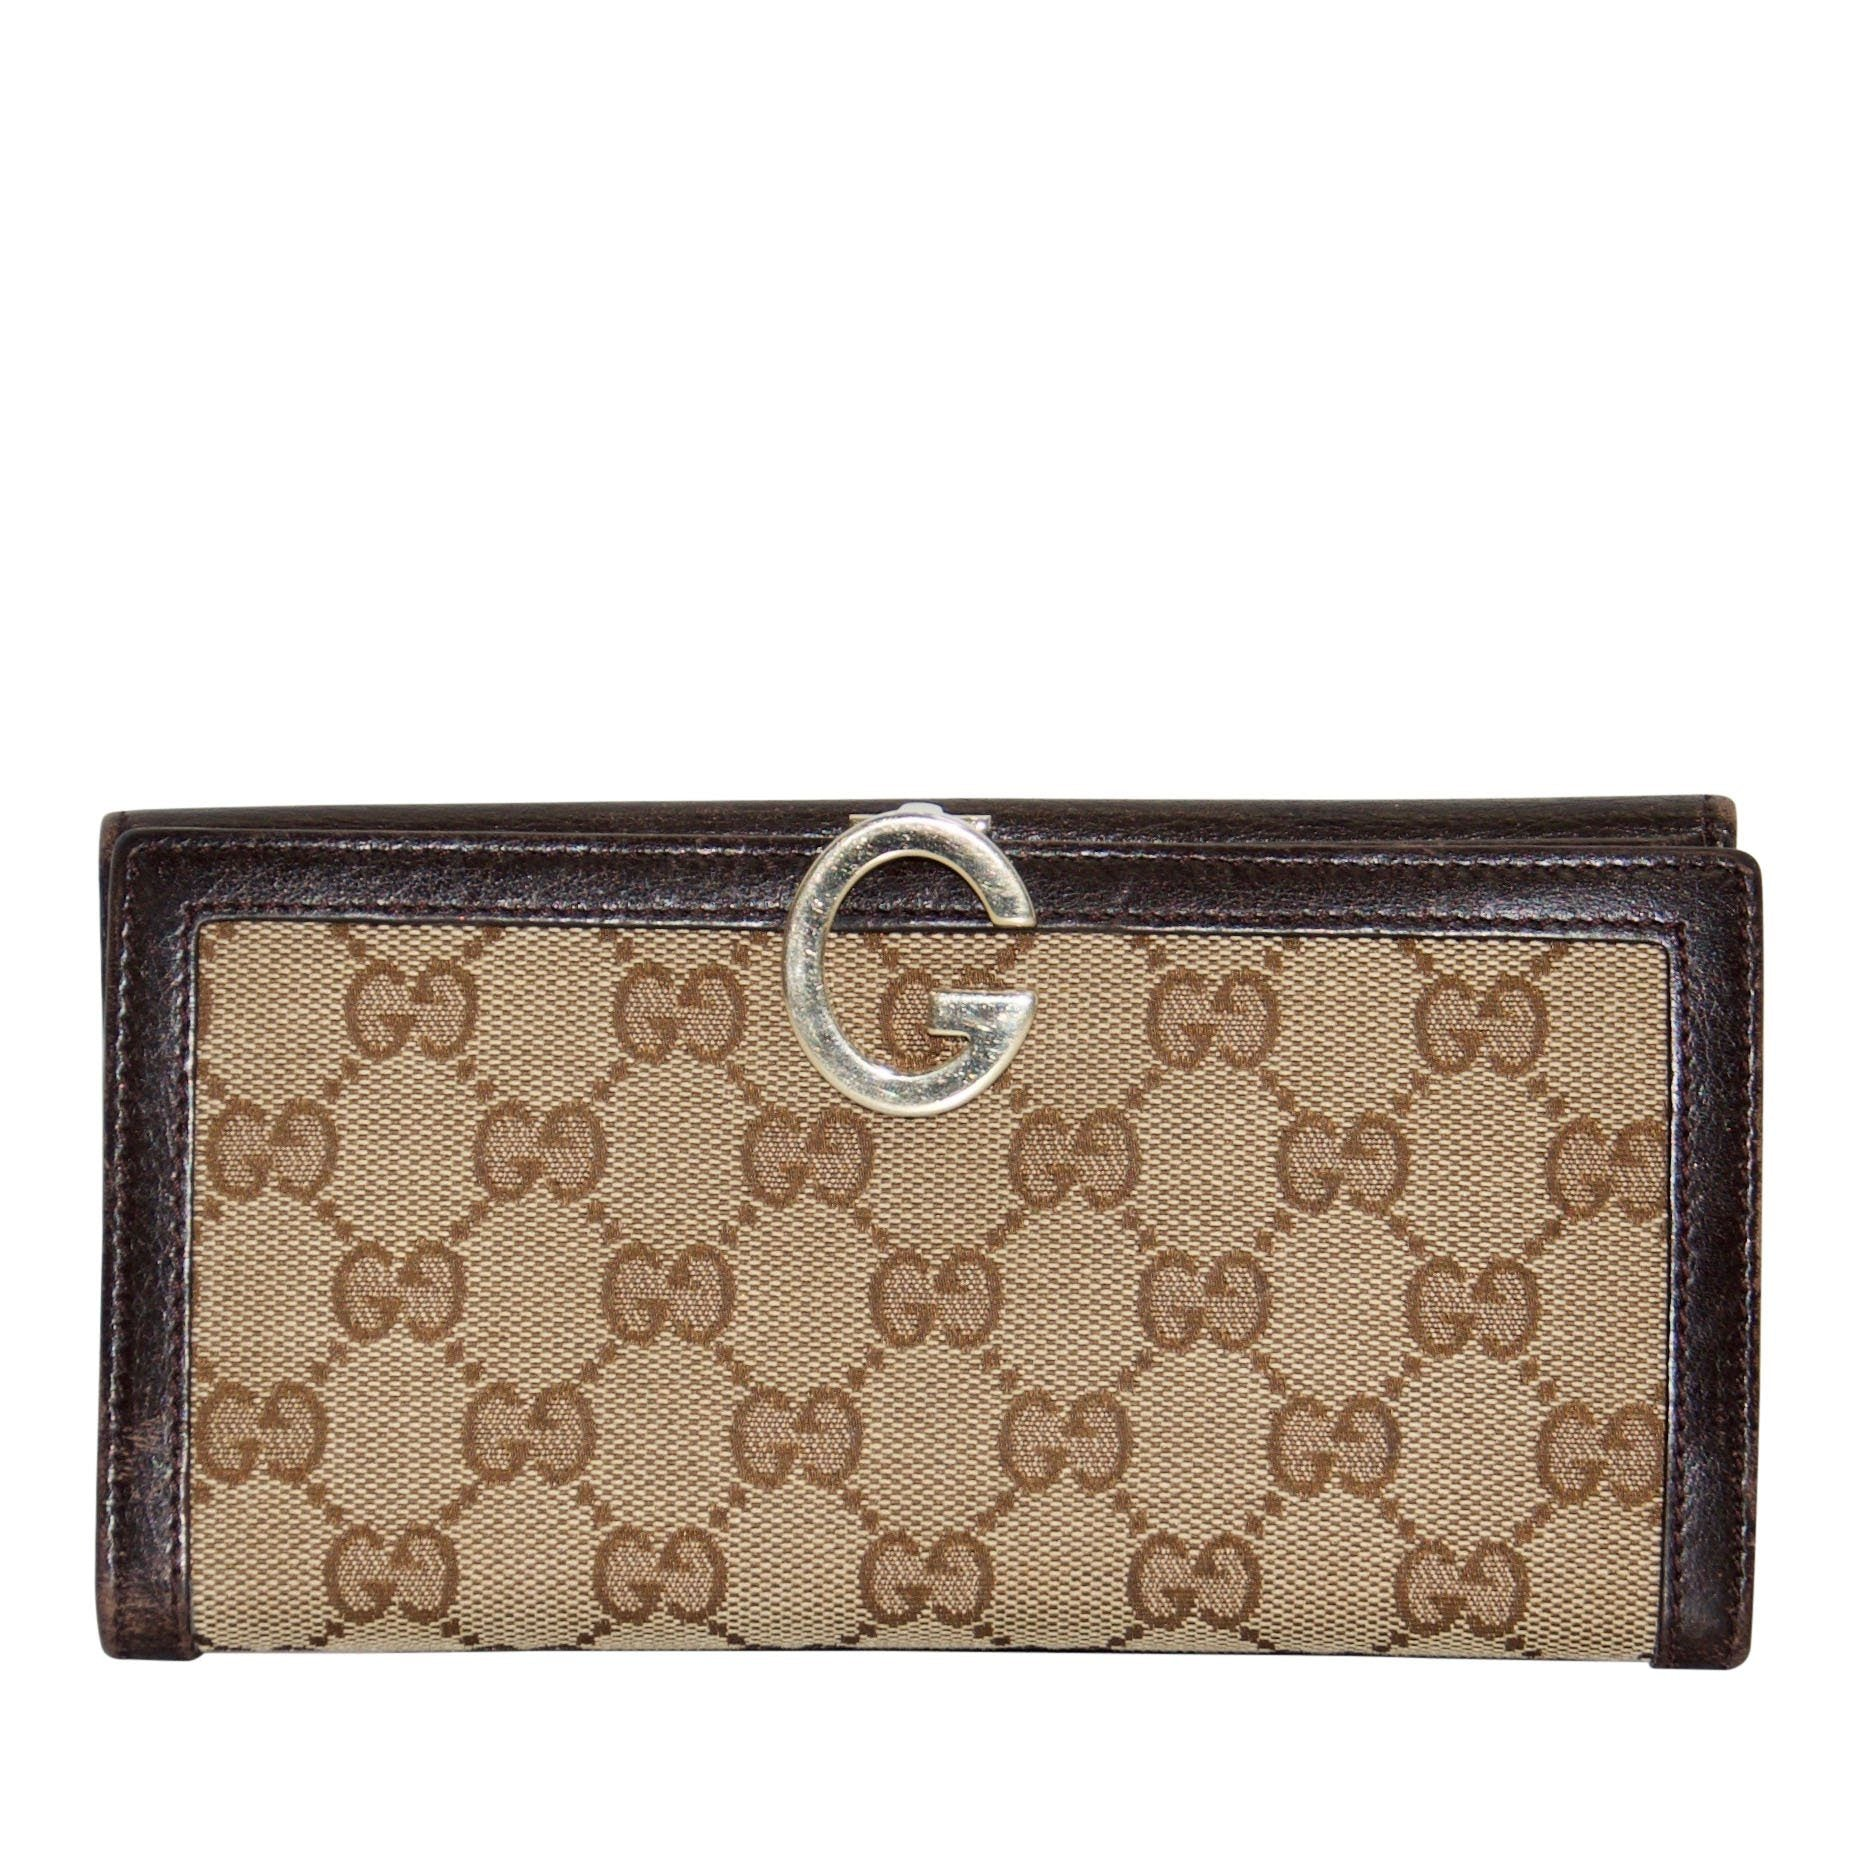 594cdd4a4ec Gucci GG Canvas Continental Wallet - Oliver Jewellery